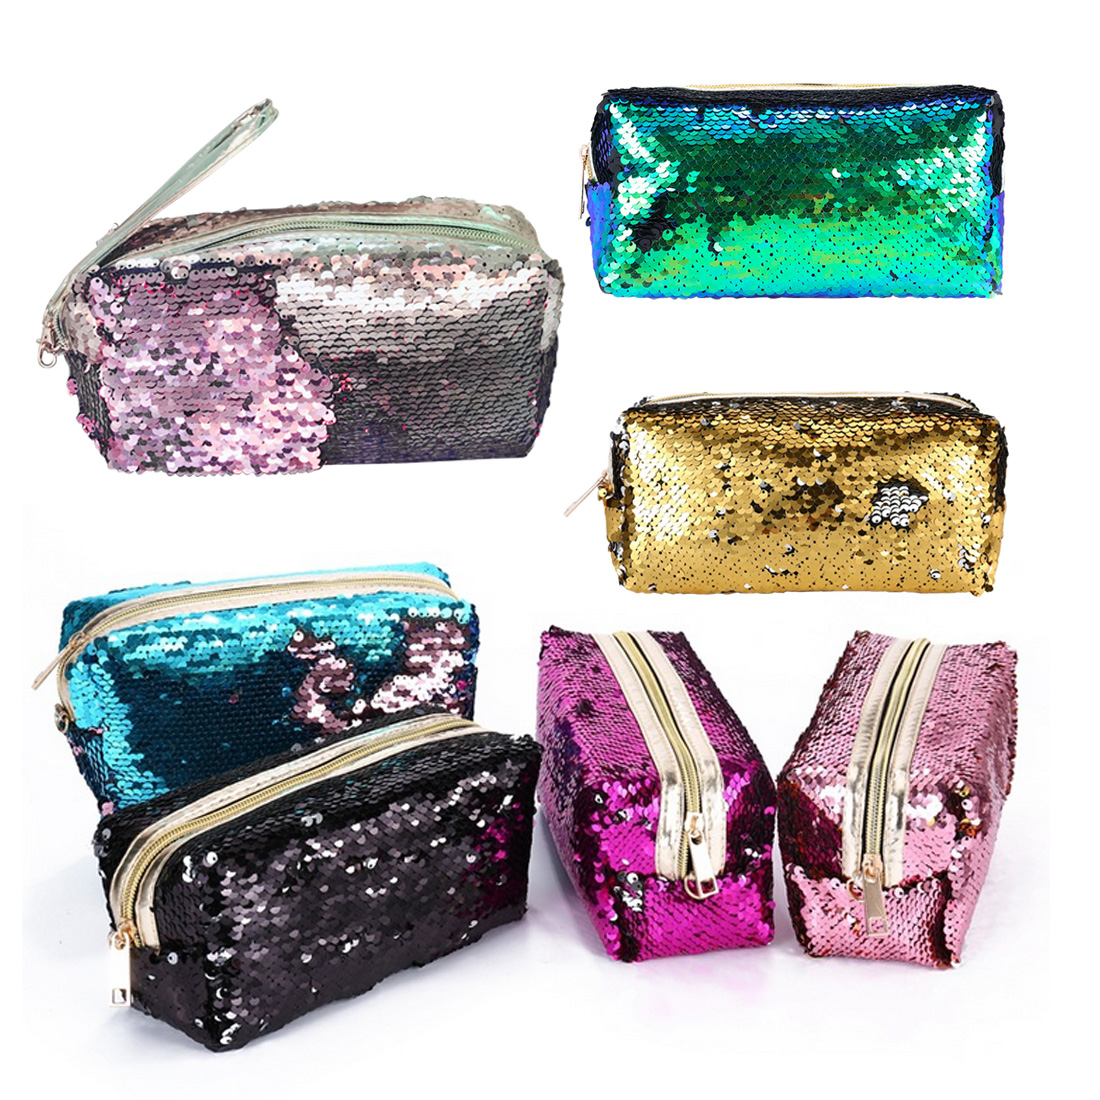 New High Quality Glitter Mermaid Sequins Laser Cosmetic Bag Fashion Student Sequin Pencil Case Ladies Coin Purse Storage Bags 100% brand new and high quality student macaron bow serie fashion change purse ap3